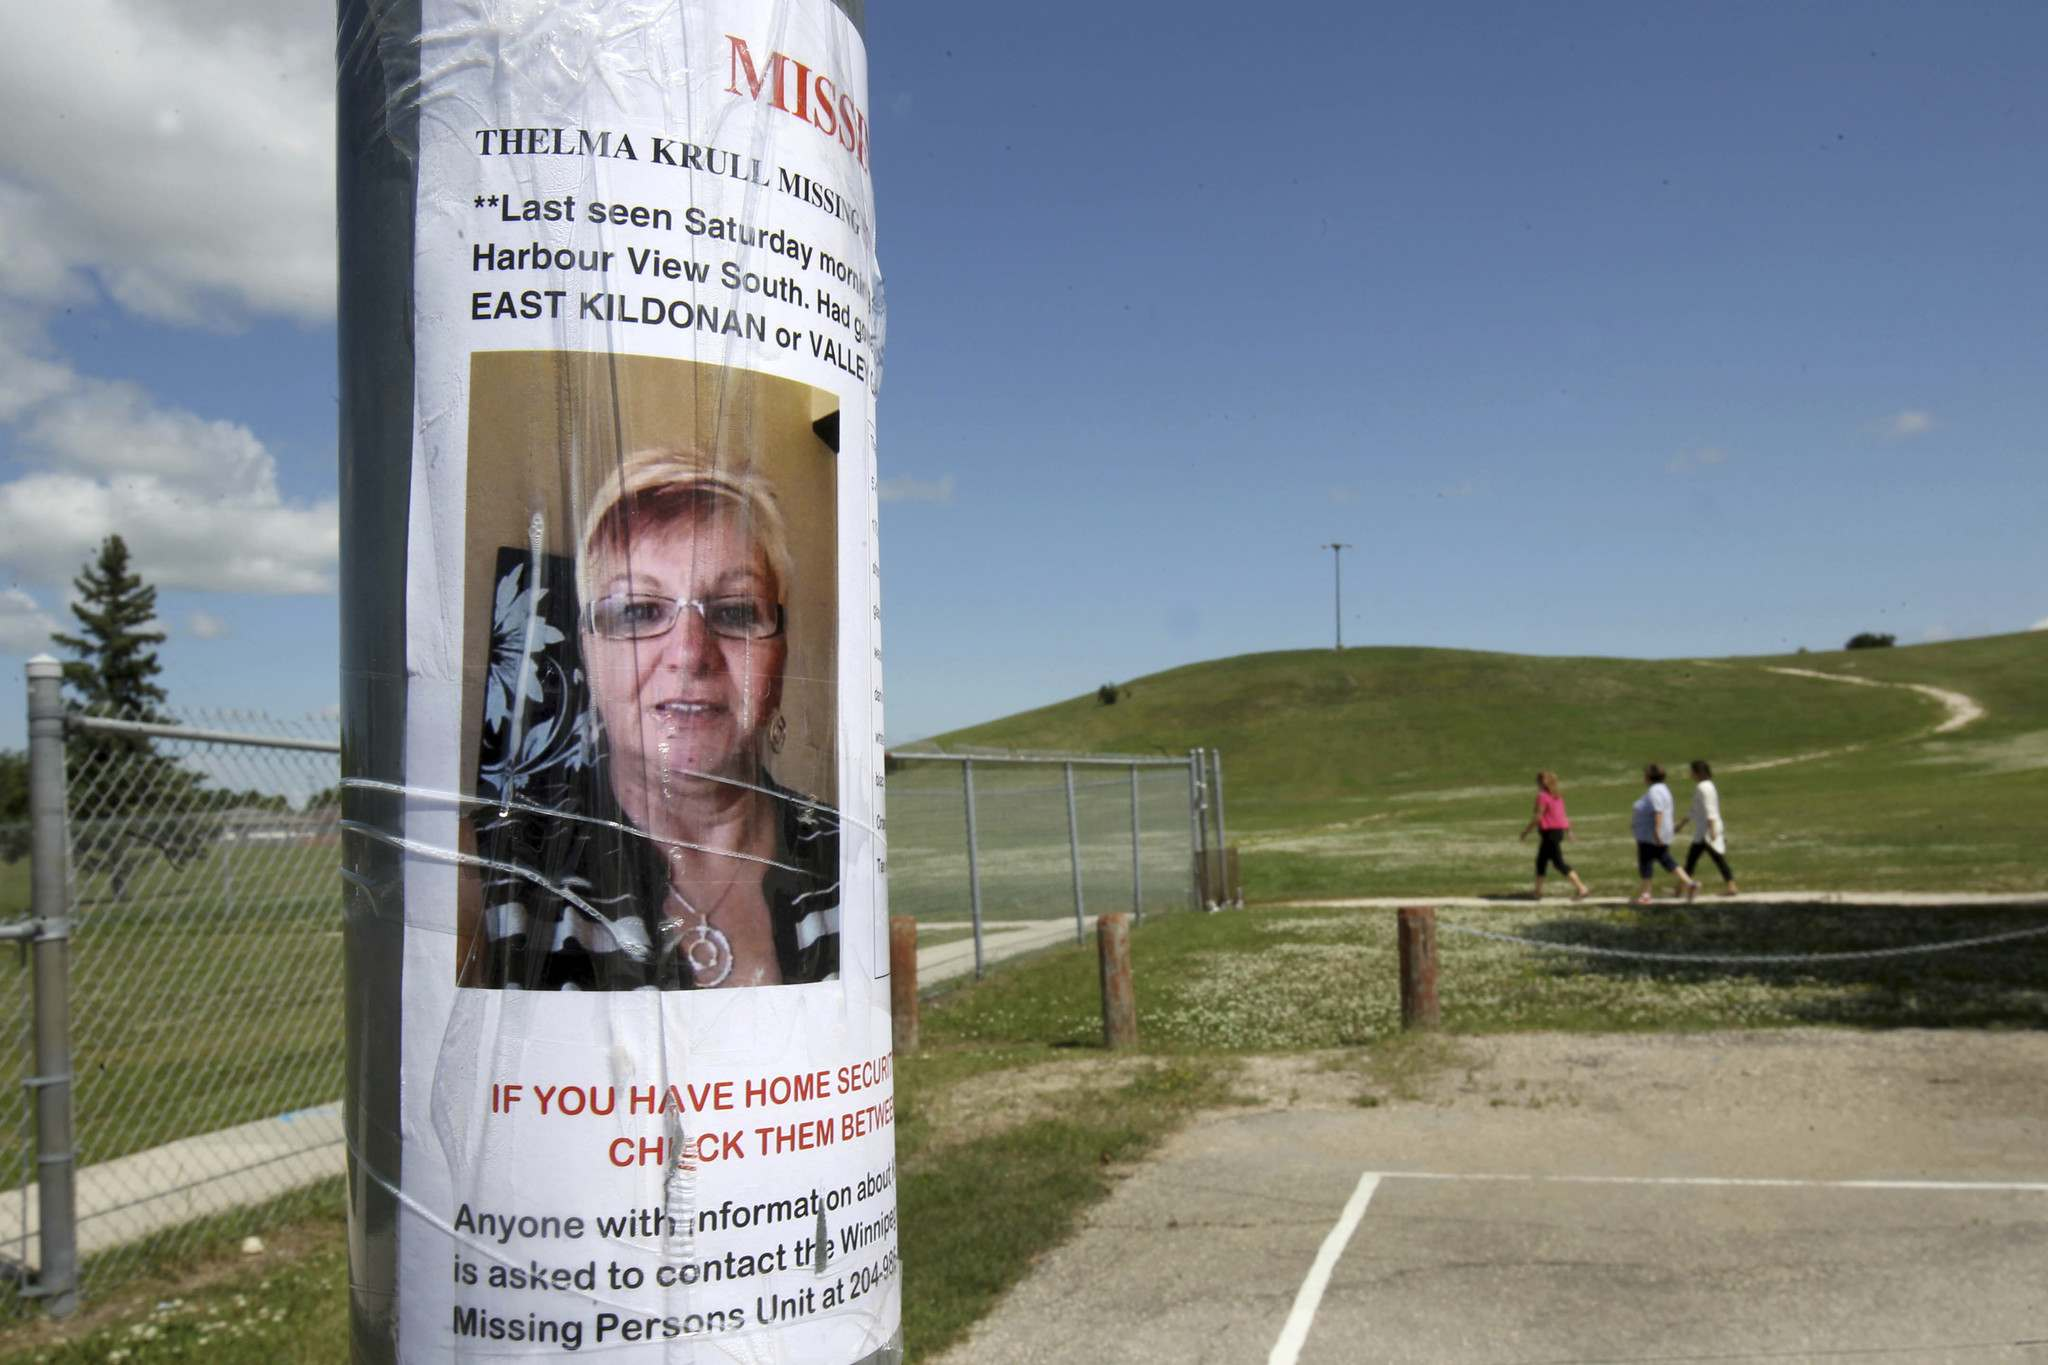 One Year Later: Search for Thelma Krull Continues